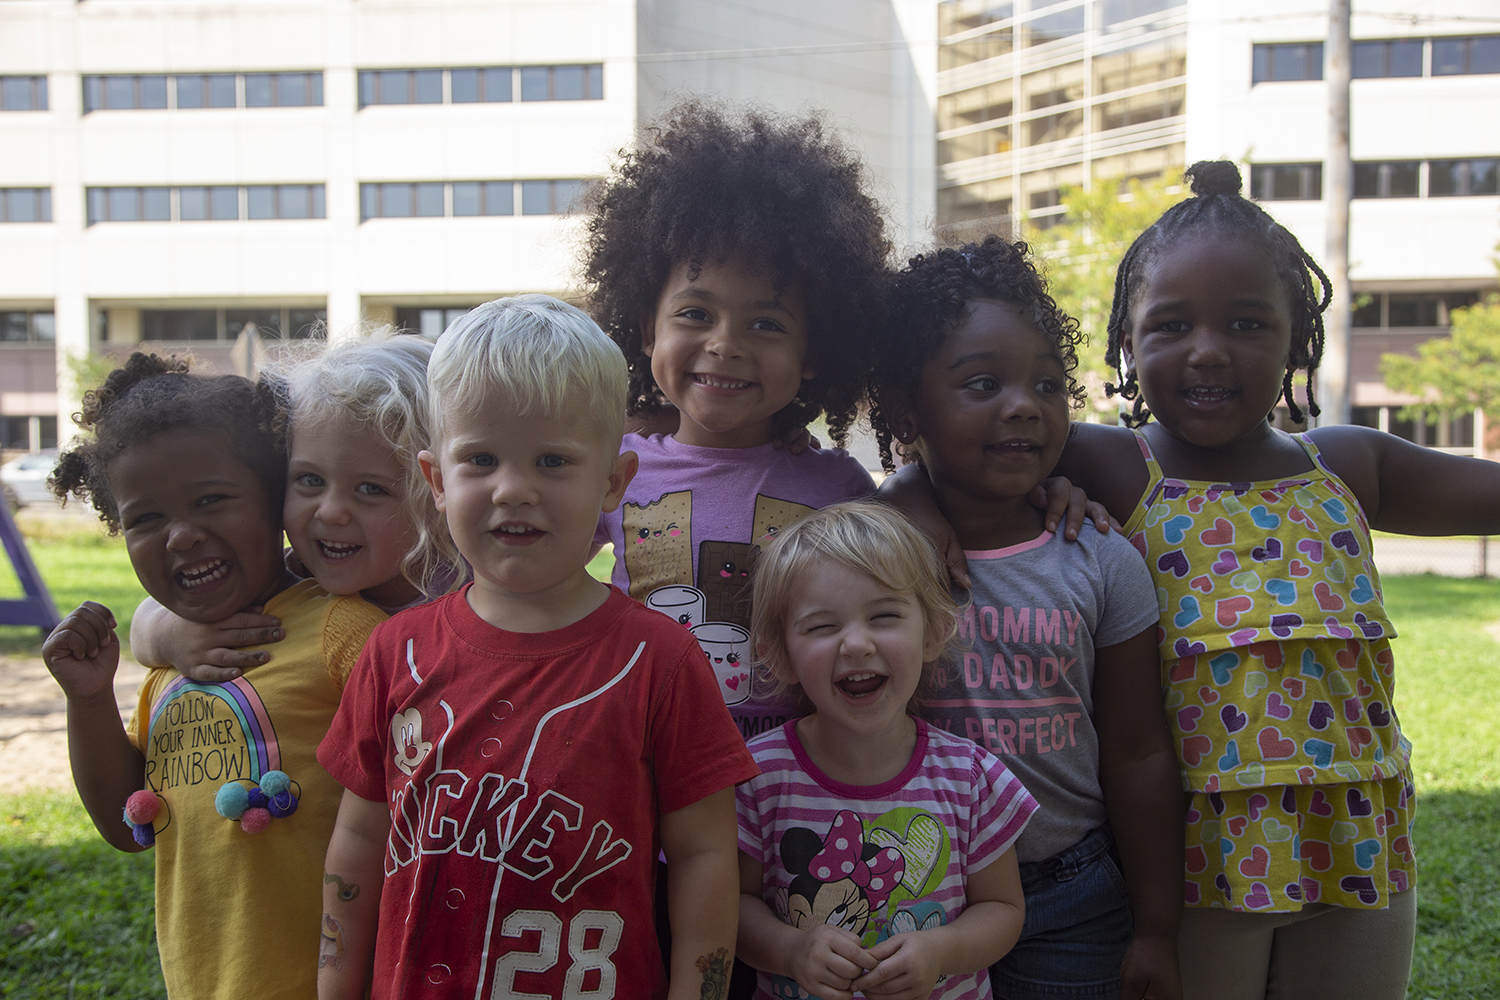 Children pose for their picture at Melrose Day Care Center on Monday Sept. 30, 2019. The child care center hopes to have infant care in a building near campus, but are facing financial setbacks.